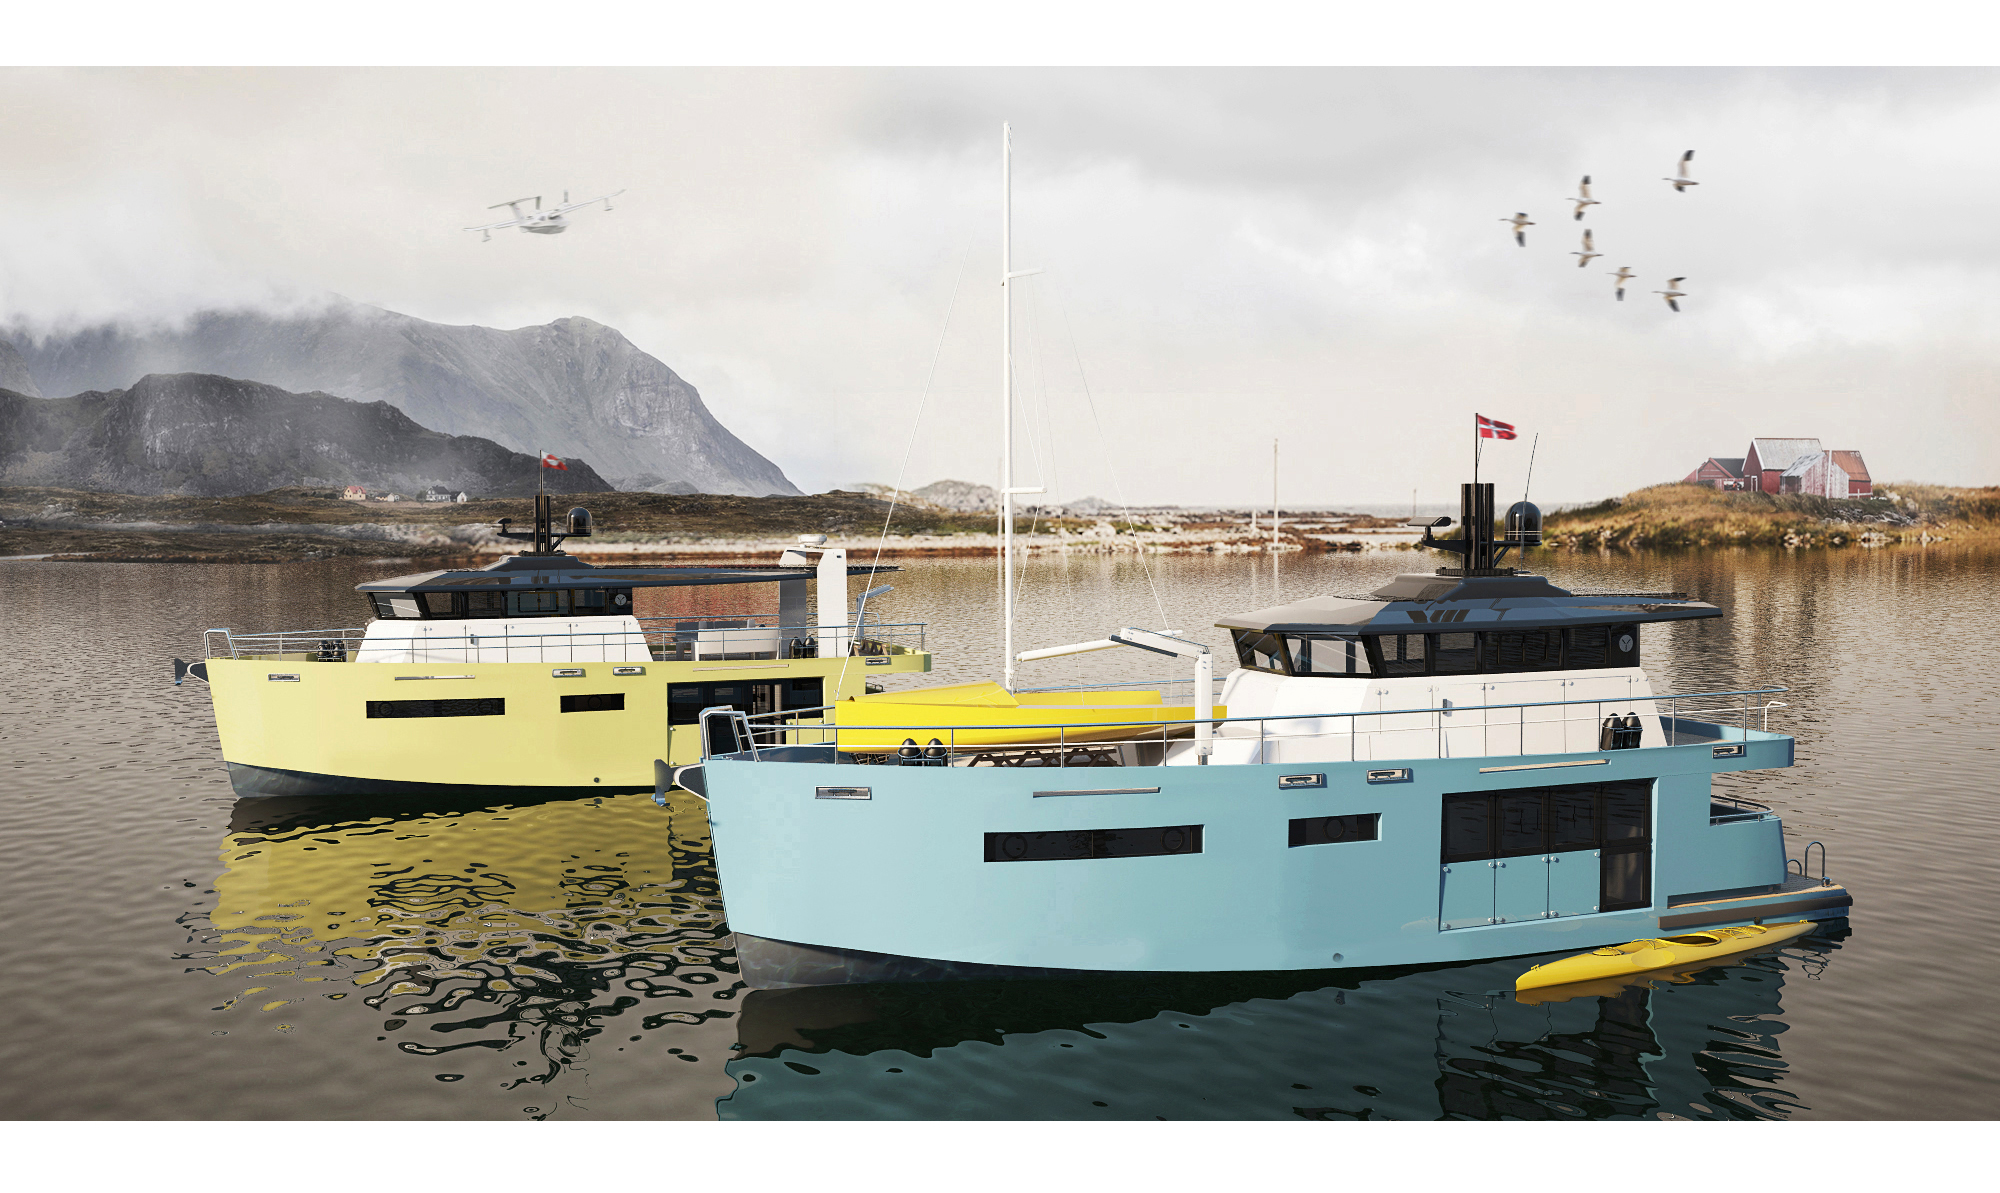 Pictures: Max Zhivov unveils his ecological houseboat ... on future of boats, future armored vehicles, future navy boats, future space stations, future pontoon boats, future animals, future cruisers, future race boats, future boat design, future speed boats, future architecture concepts, future cargo boats, future boats yachts, future seaplanes, future atv, future technology, future townhouses, future power boats, future homes,